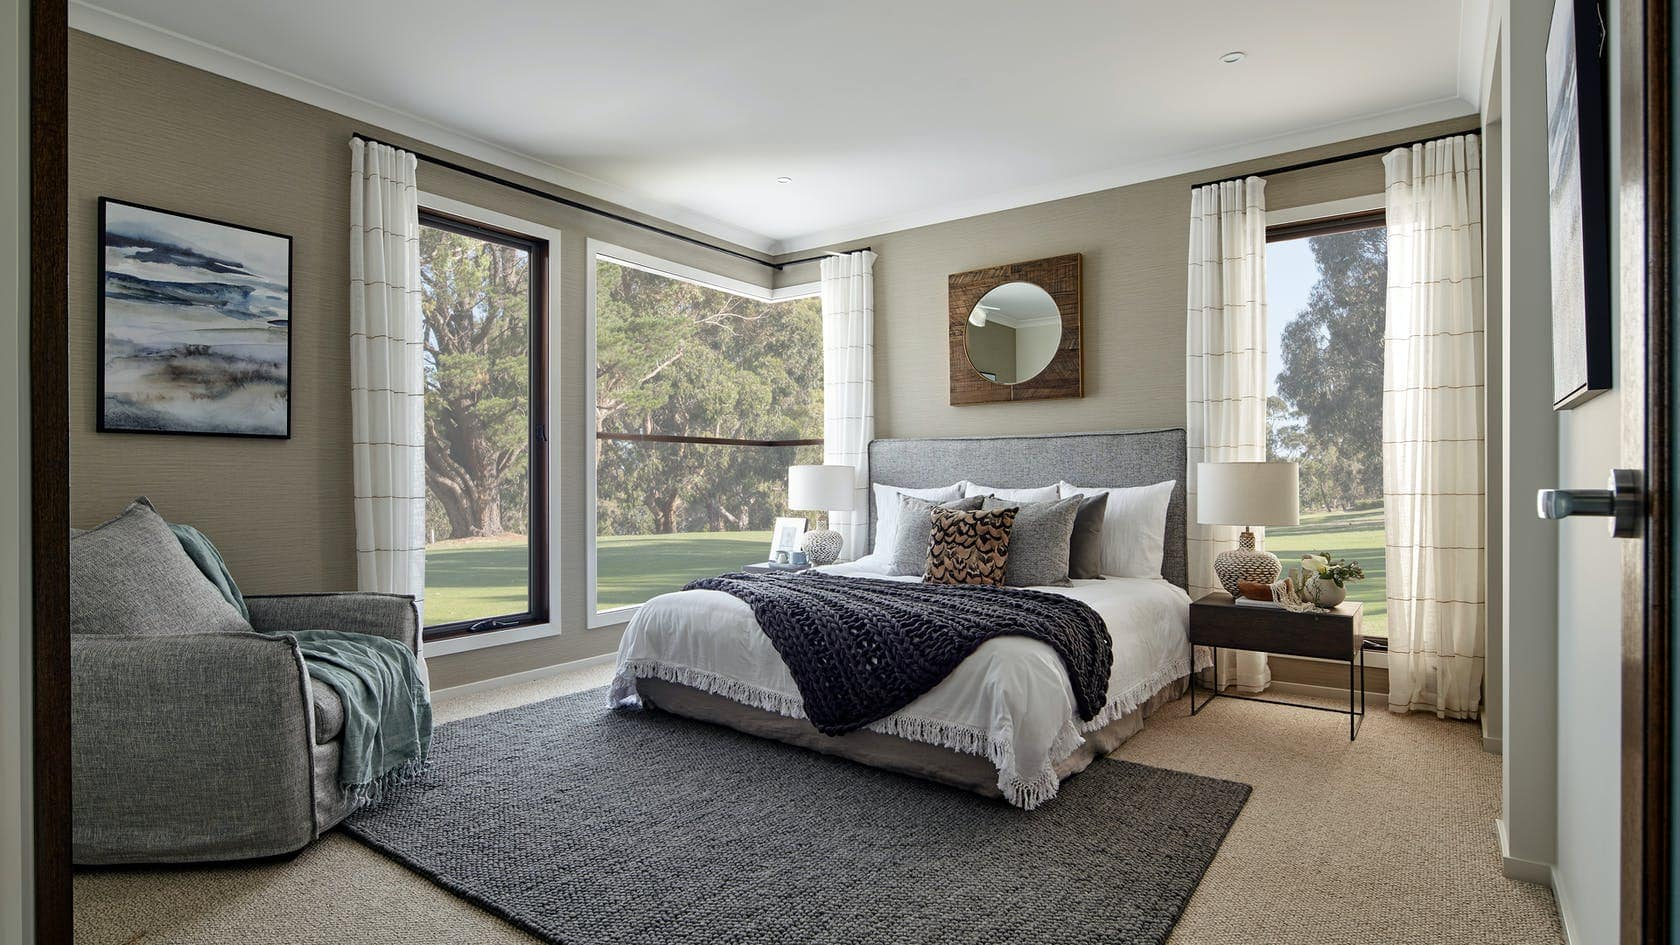 centre open striped sheer curtains on black track in master bedroom